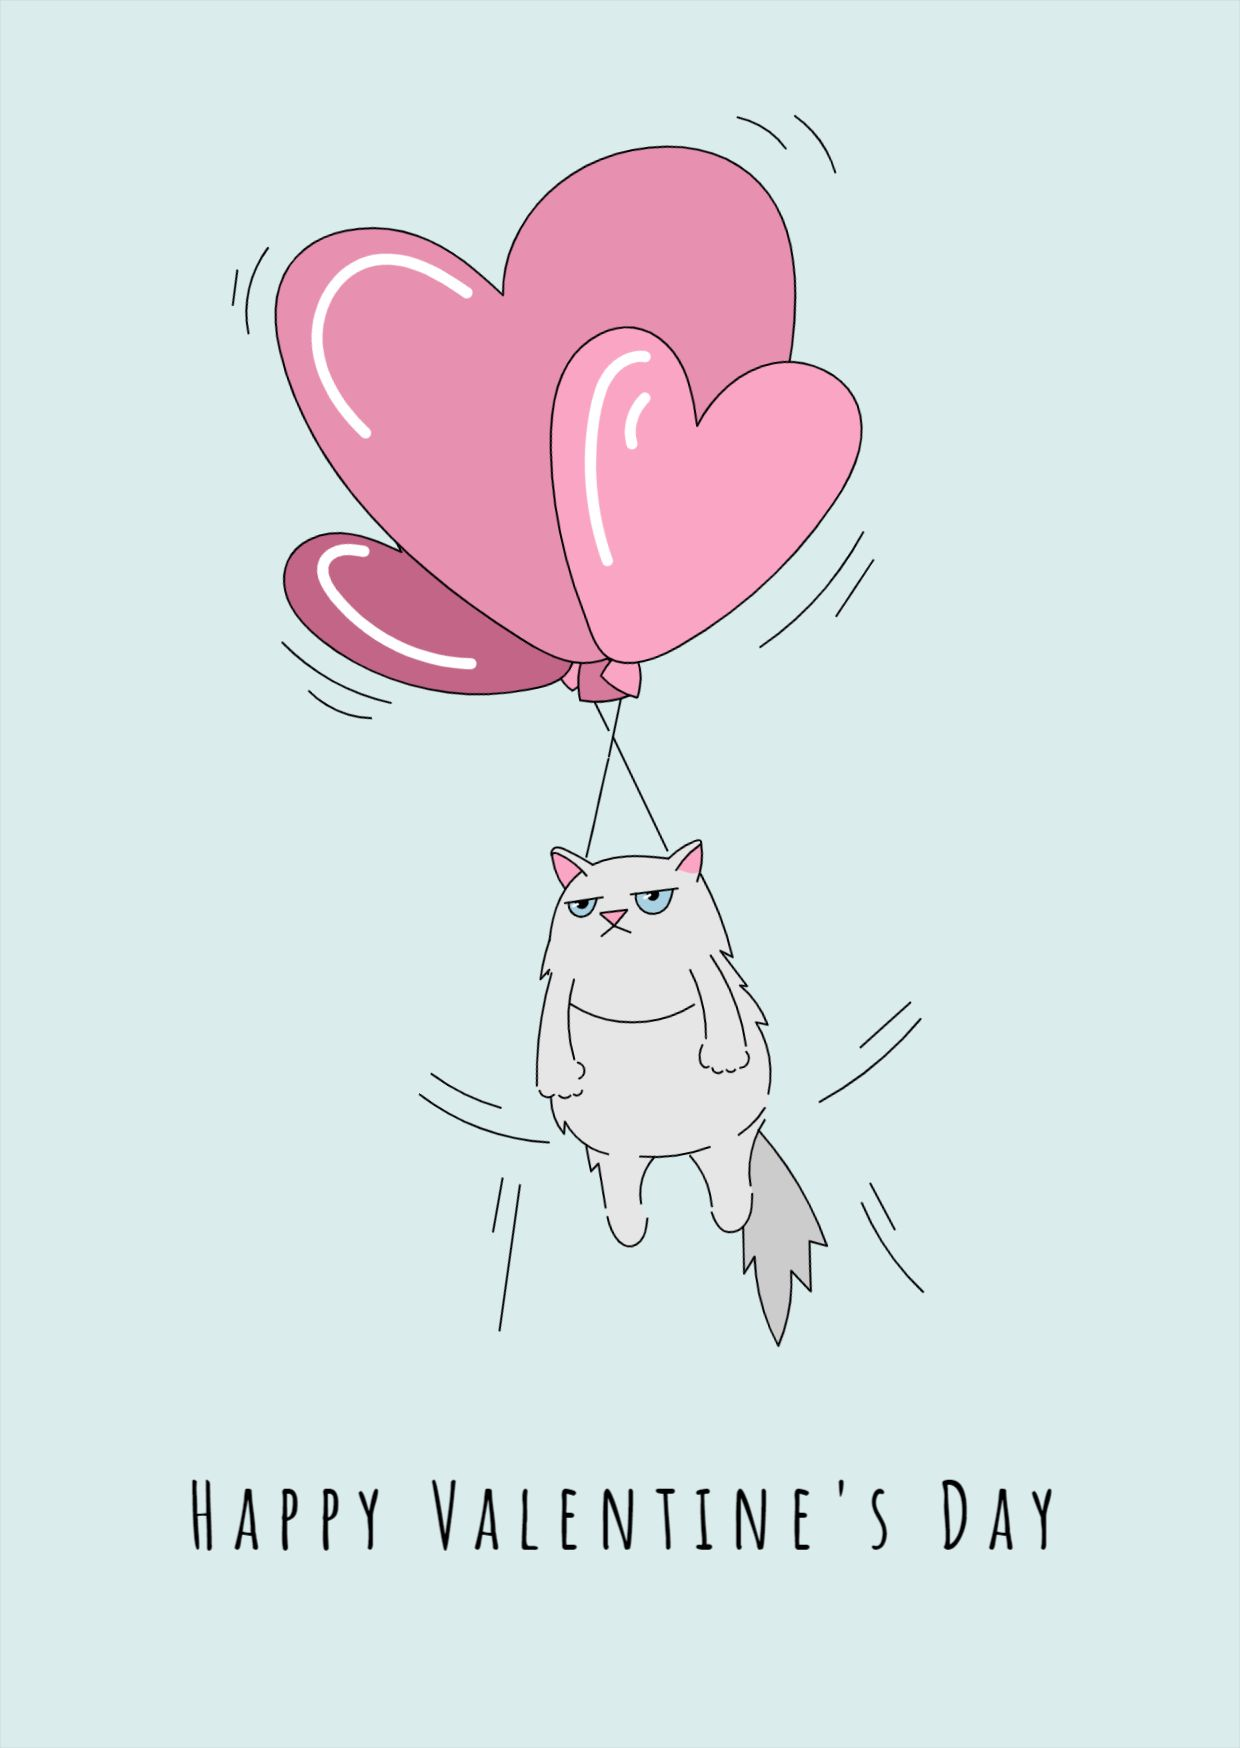 Valentine Cat and Balloons Greeting Card Design